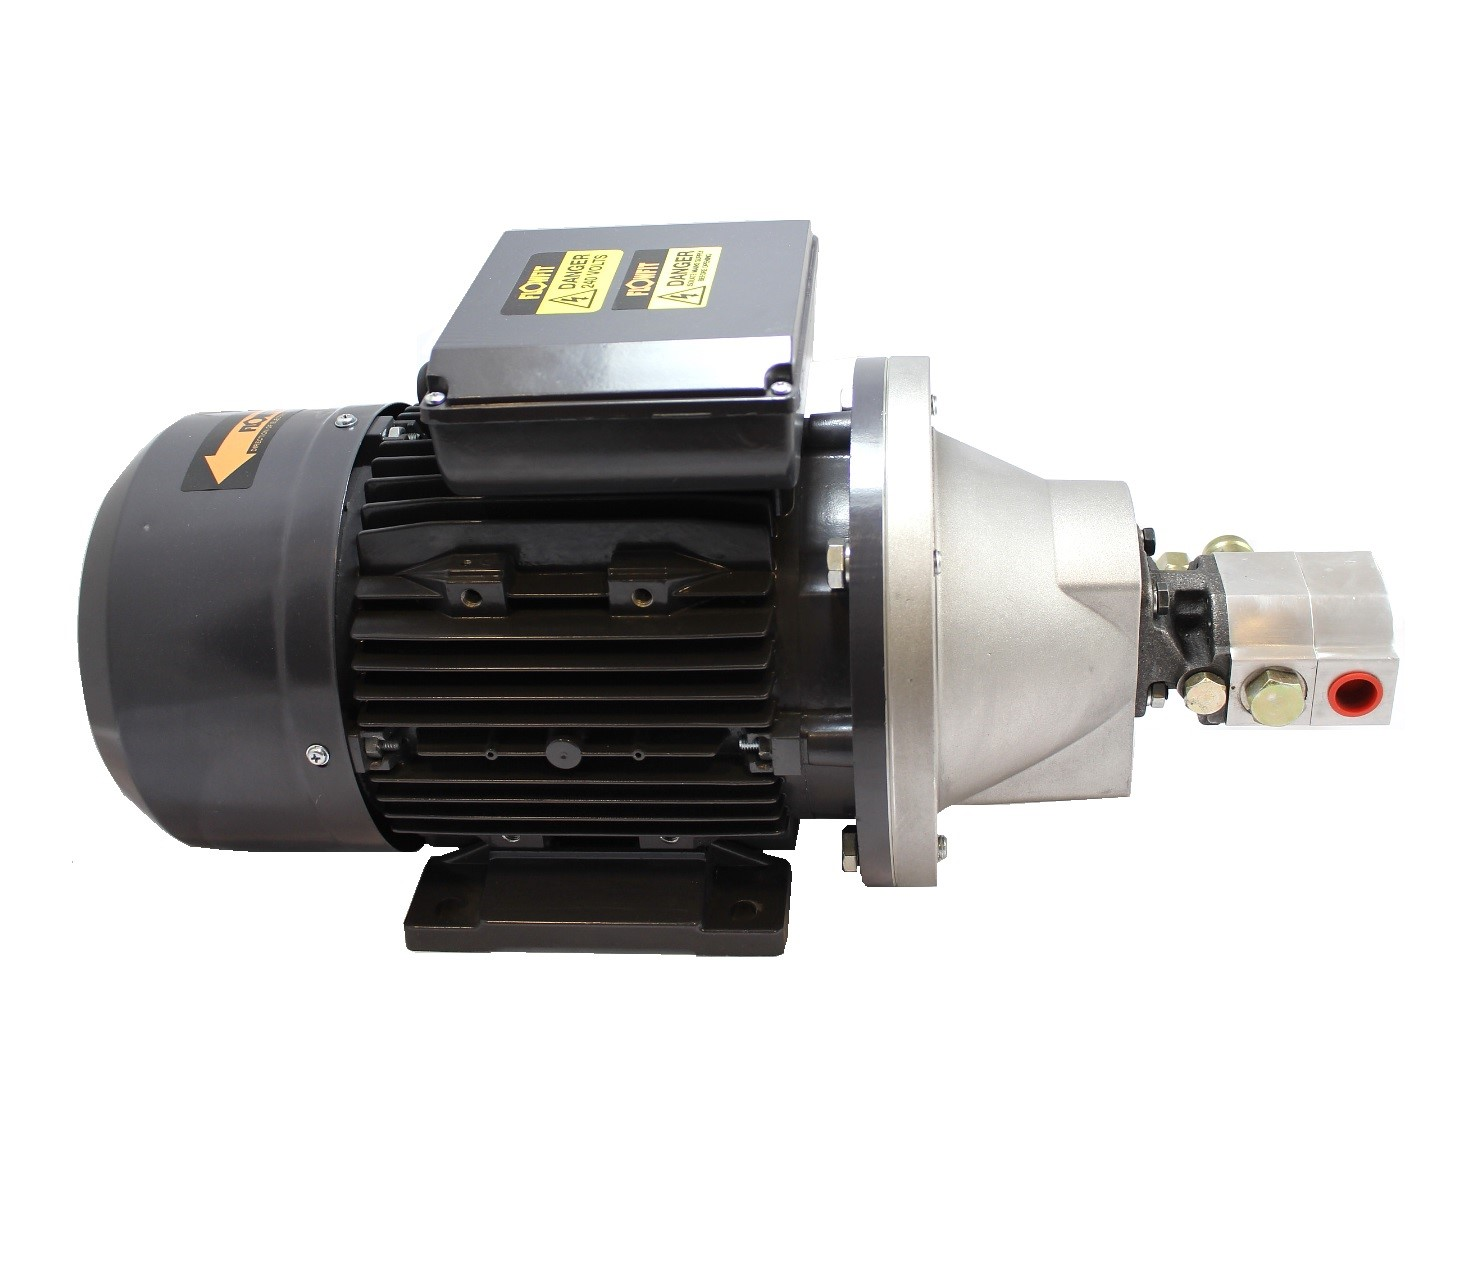 Hydraulic electric motor pump set 3 7kw 240v single phase for Hydraulic pumps and motors for sale